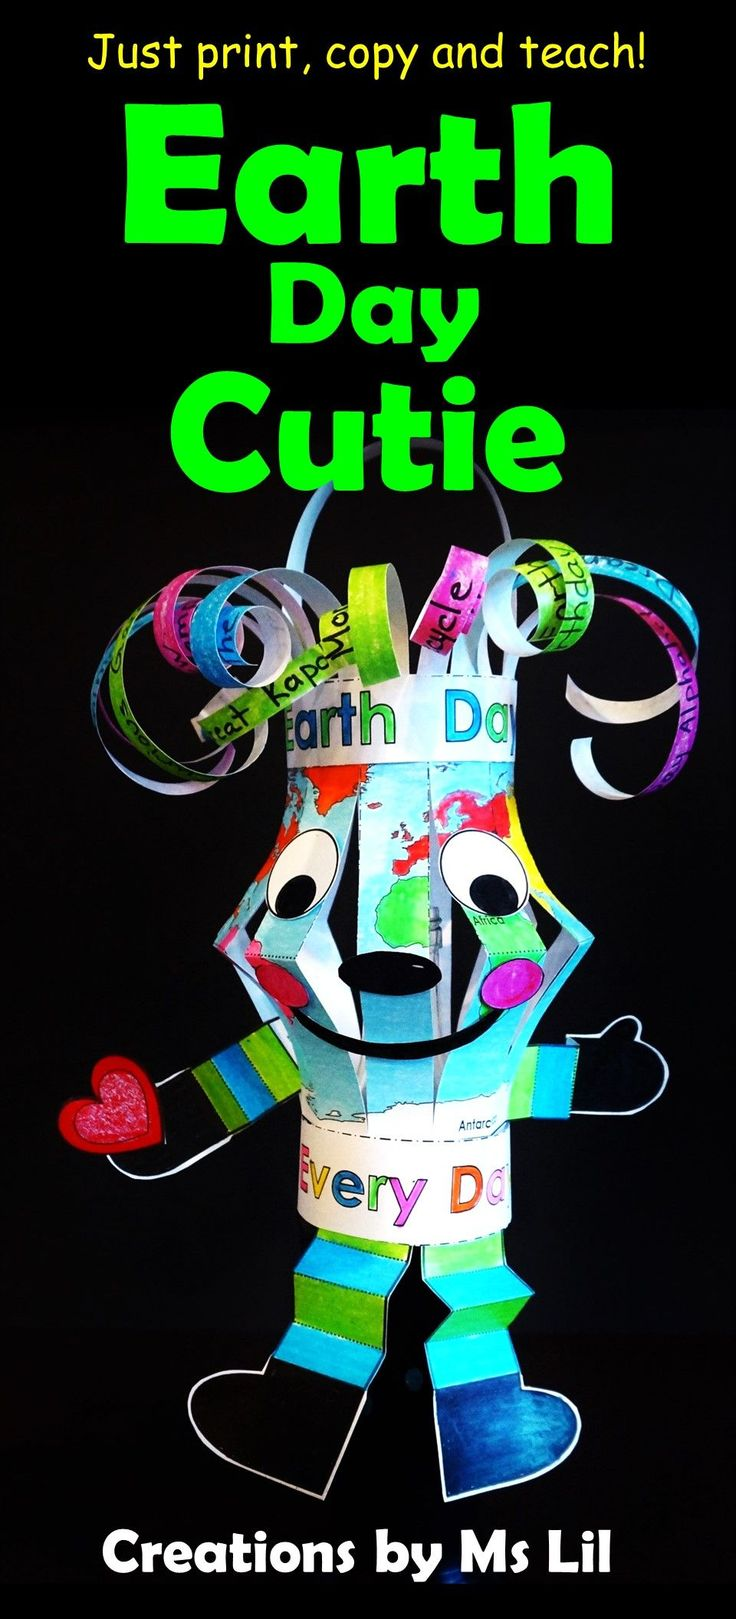 Create this Earth Day Cutie while teaching environmental education. This is the perfect craft to compliment your Earth Day Units.:: :: :: :: :: :: :: :: :: :: :: :: :: :: :: :: :: :: :: Earth Day :: Earth Day Craft :: Fine Motor Crafts :: April 22 :: Earth Day Activities :: Recycling Activities :: Recycling Crafts :: Paper Lantern :: Ms Lil :: Environmental Education :: World Maps :: Globes :: Montessori ::